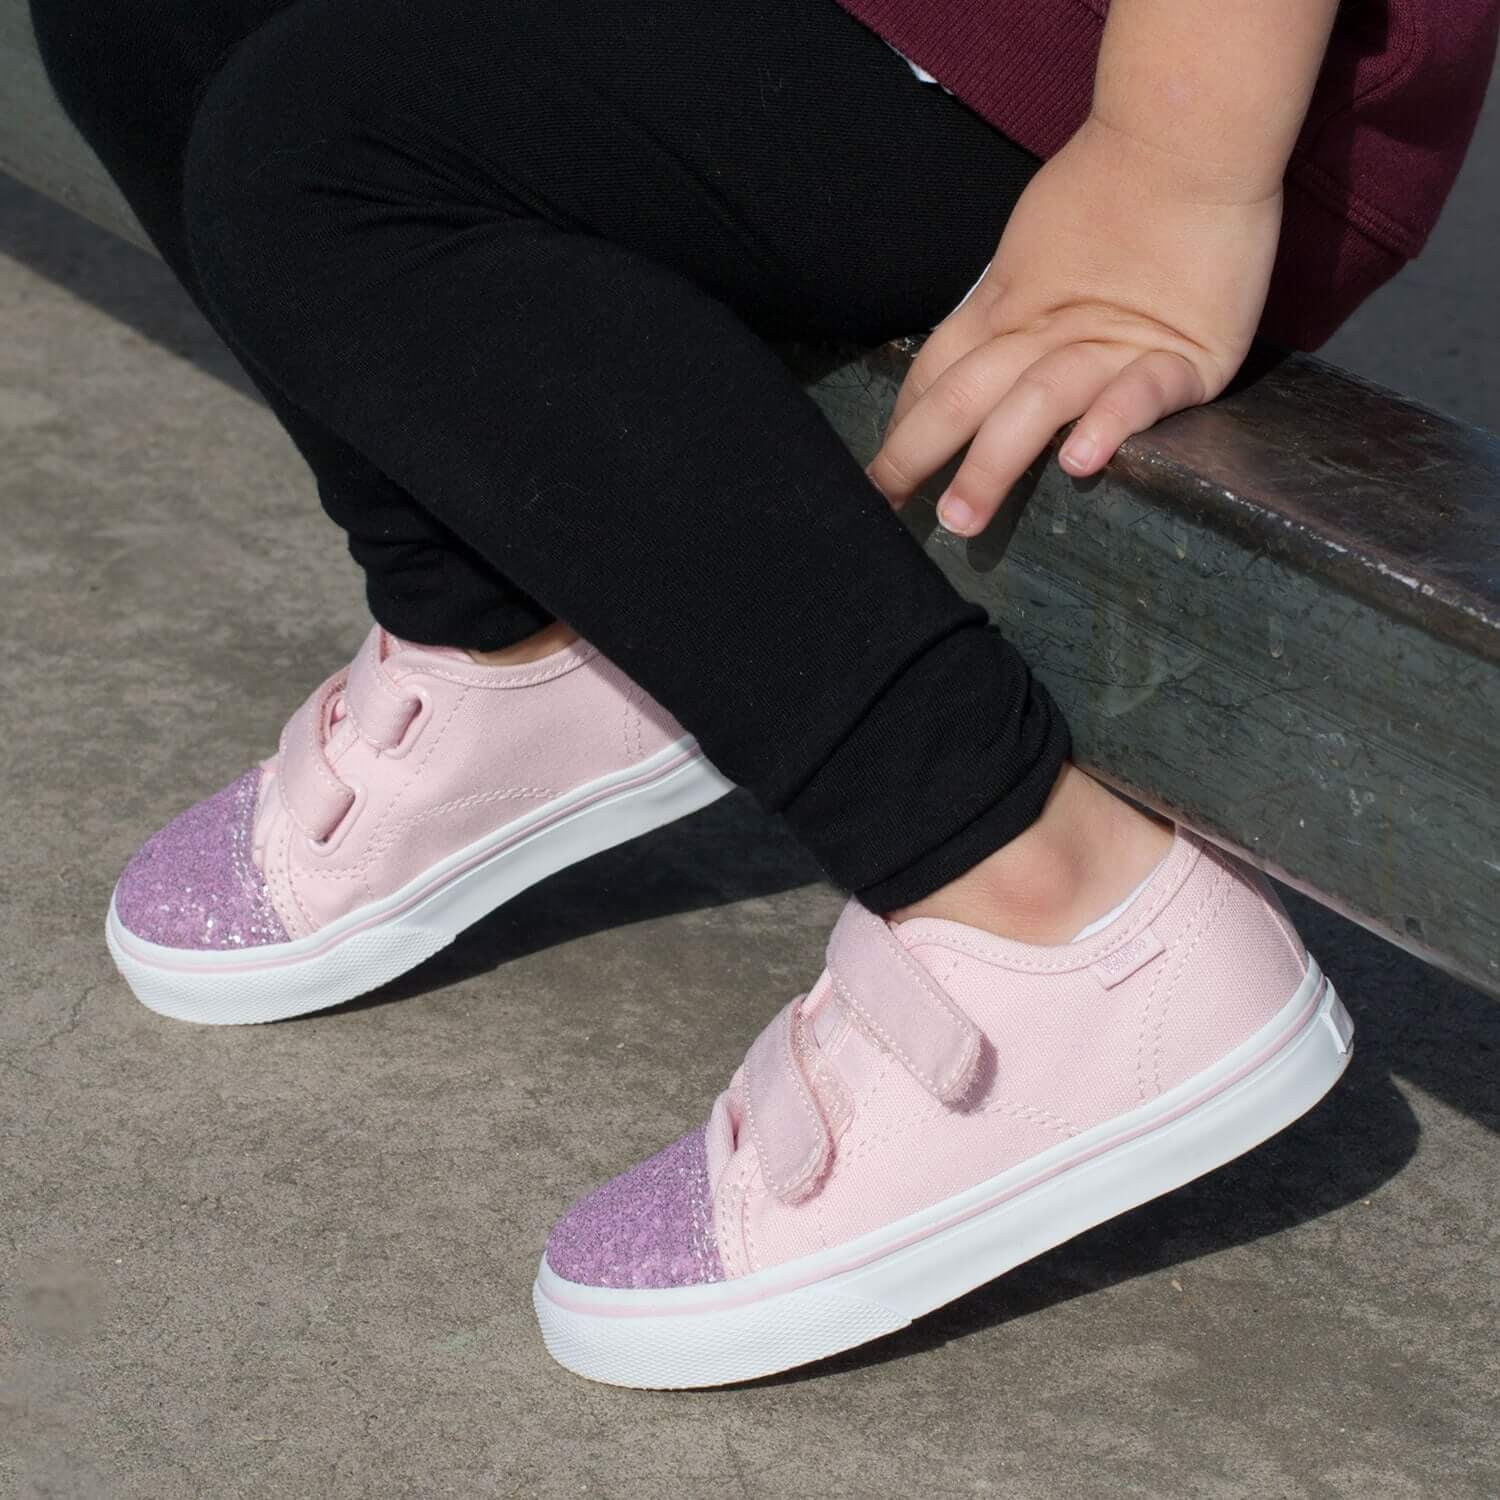 Vans Toddler Style 23 Sneaker – Chalk Pink/Glitter Toe Lifestyle 3